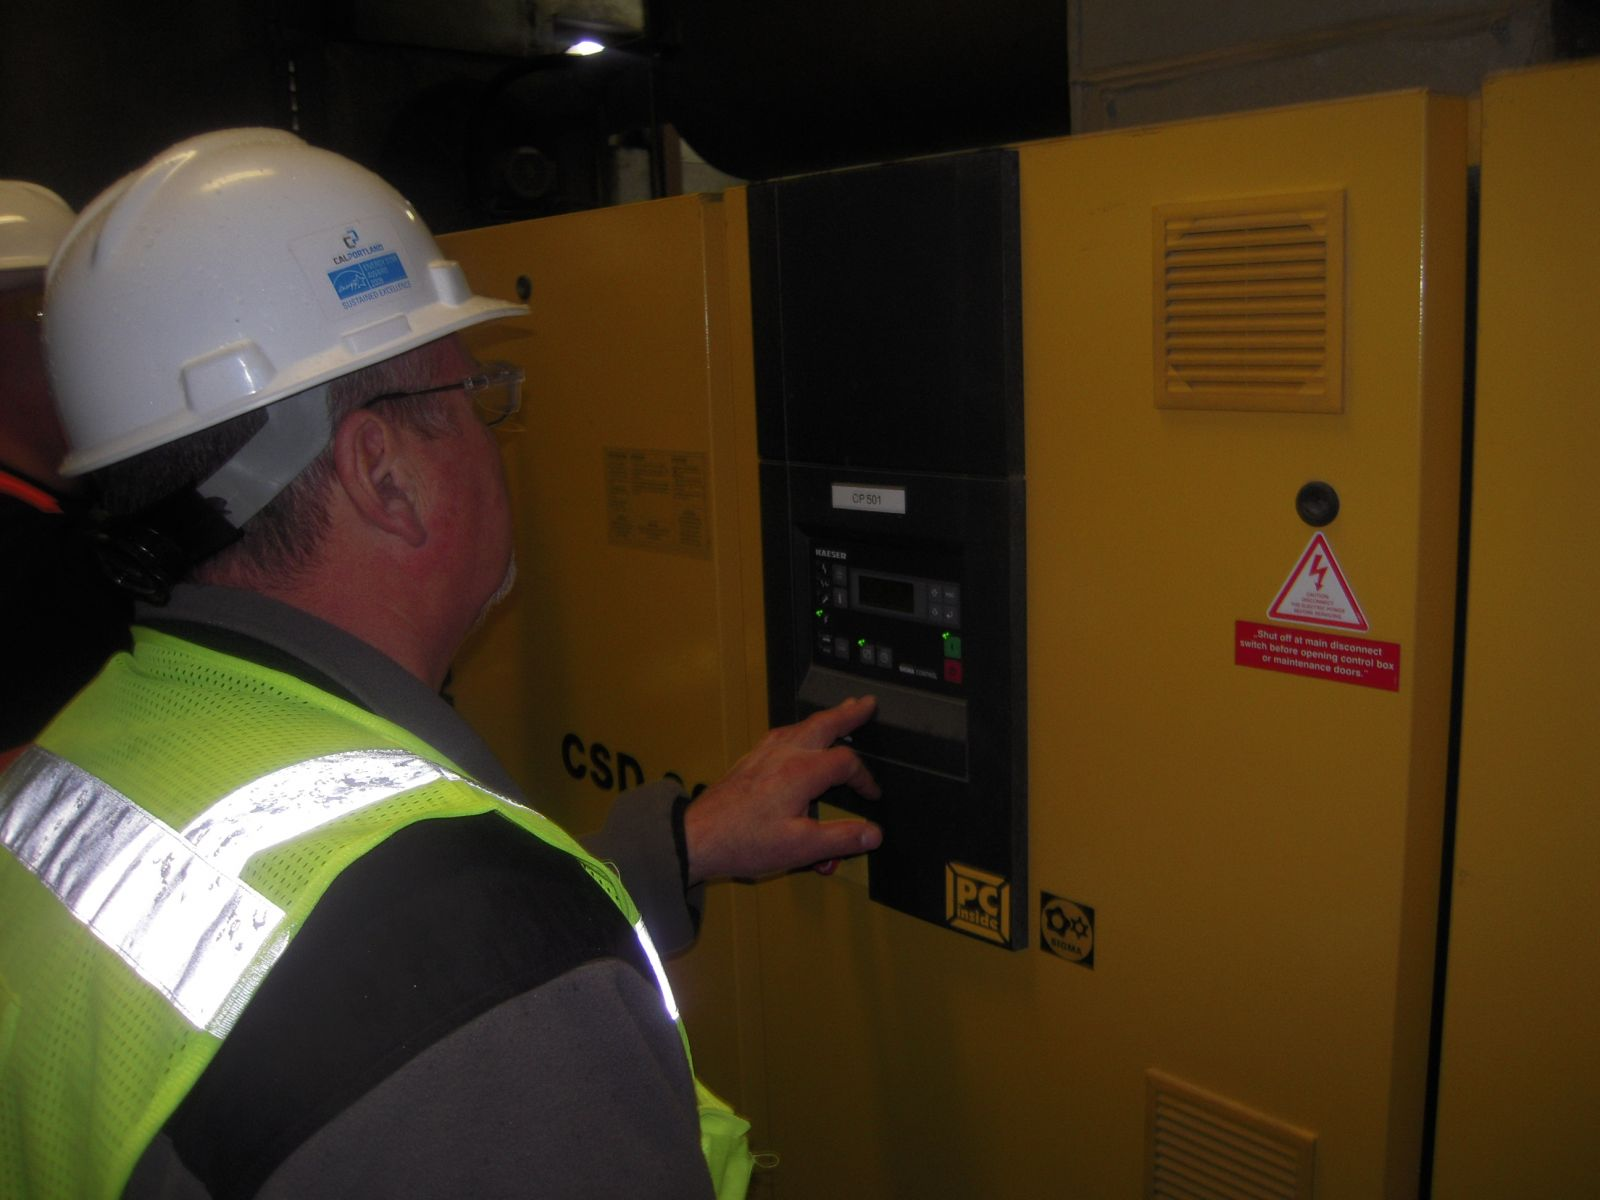 This photograph illustrates a worker taking an energy reading.